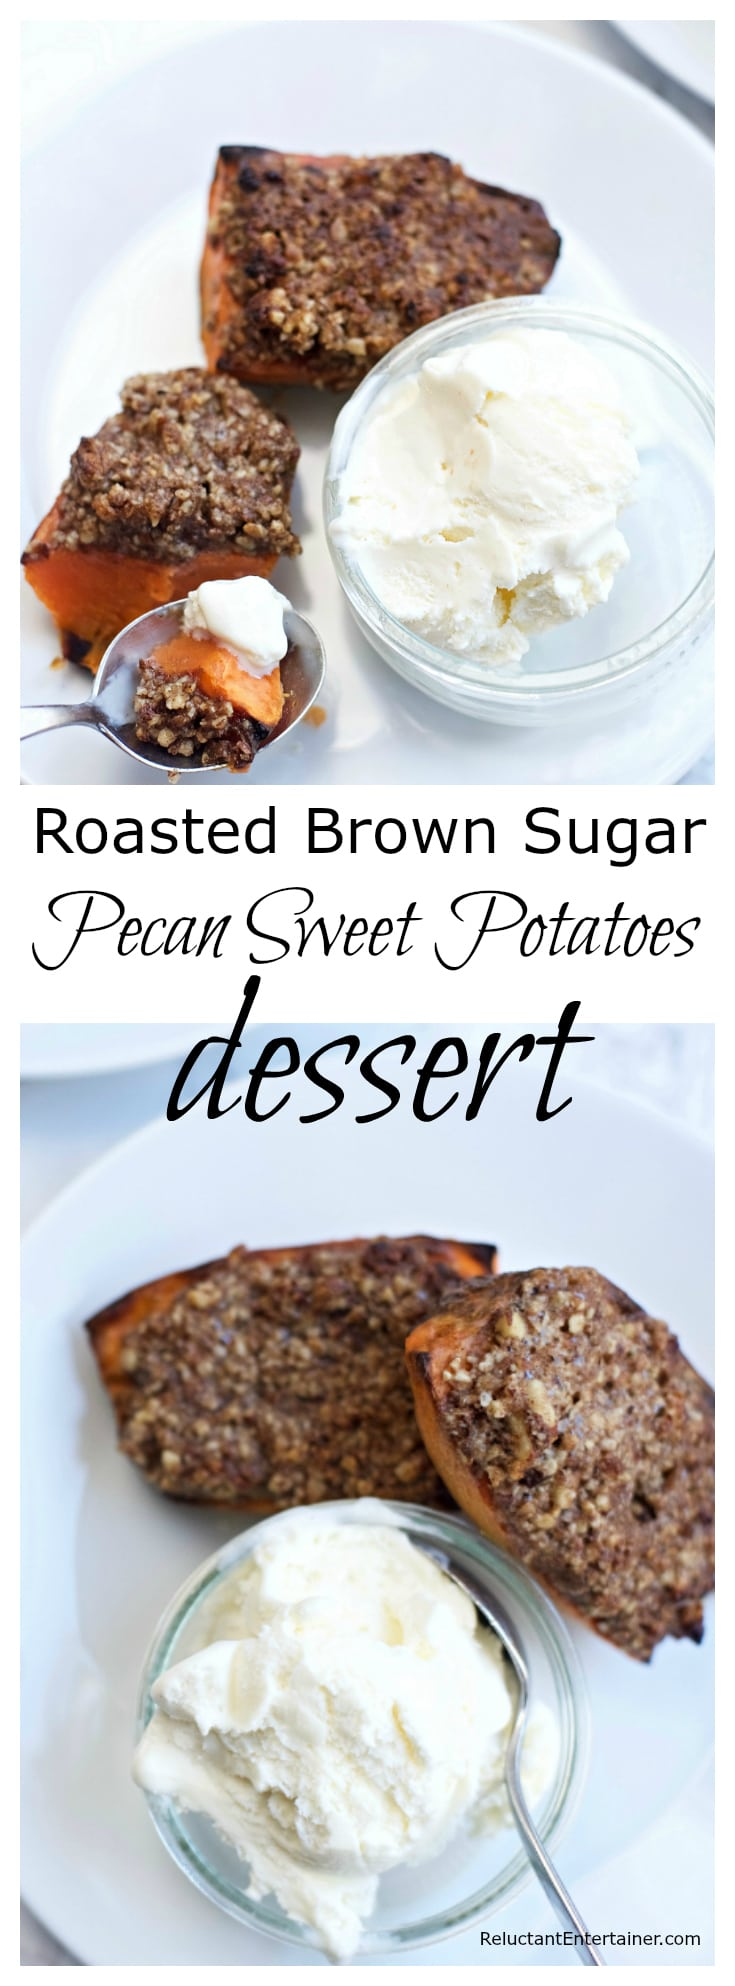 Roasted Brown Sugar Pecan Sweet Potatoes Dessert